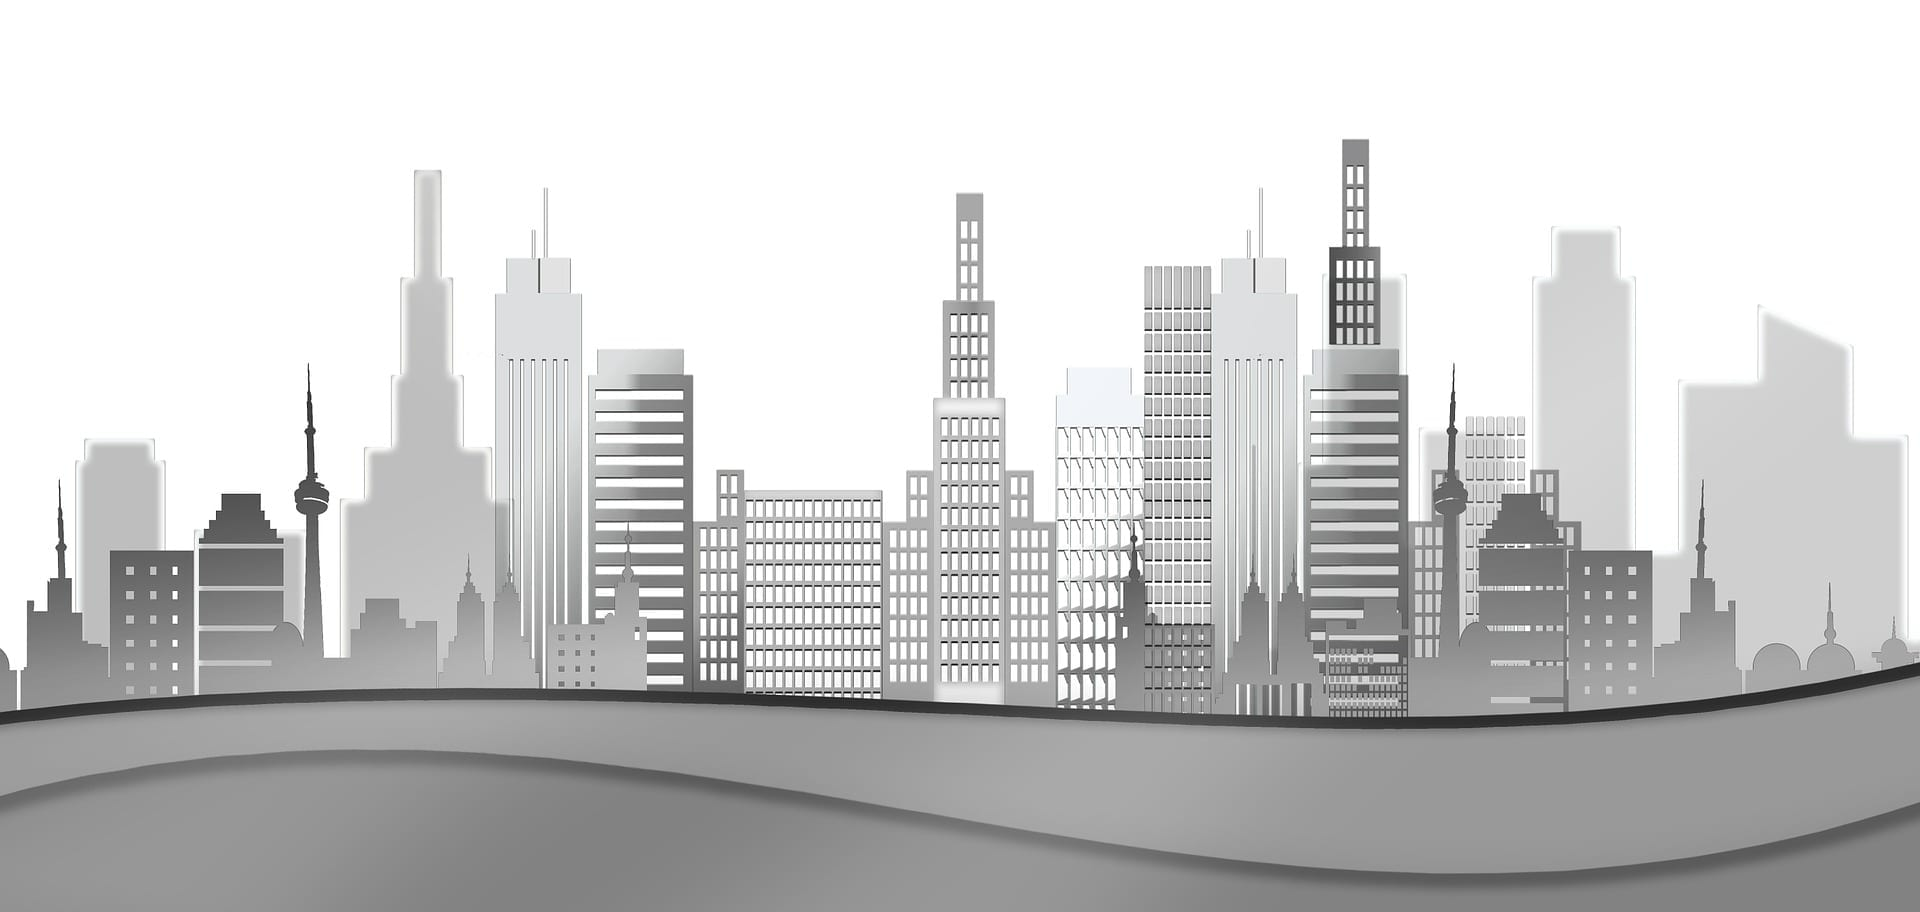 Computer generated city skyline showing commercial property